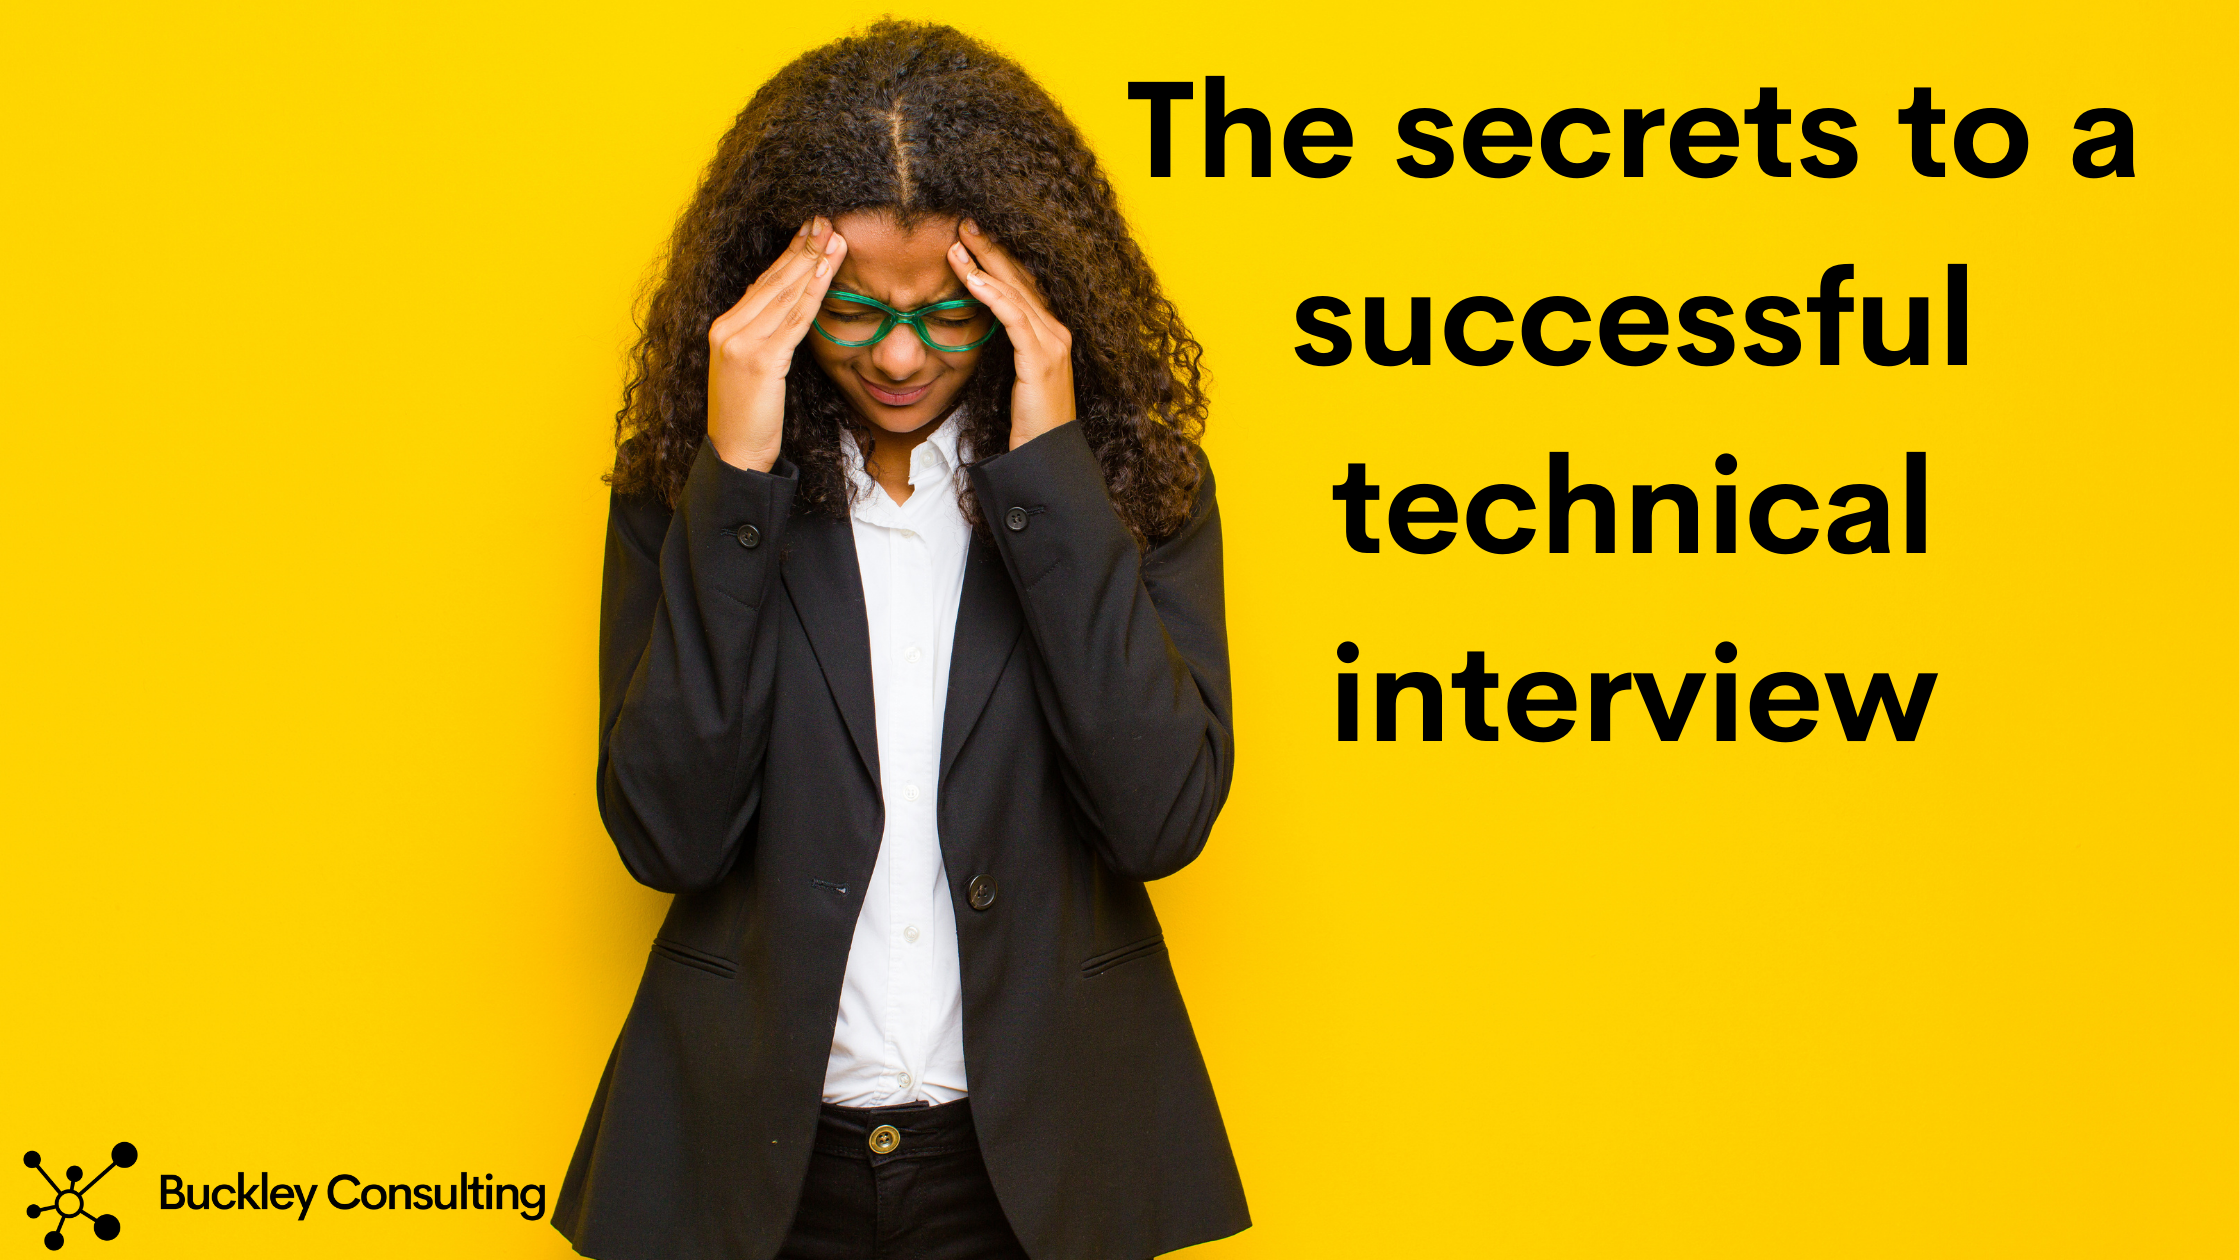 The secrets to a successful technical interview